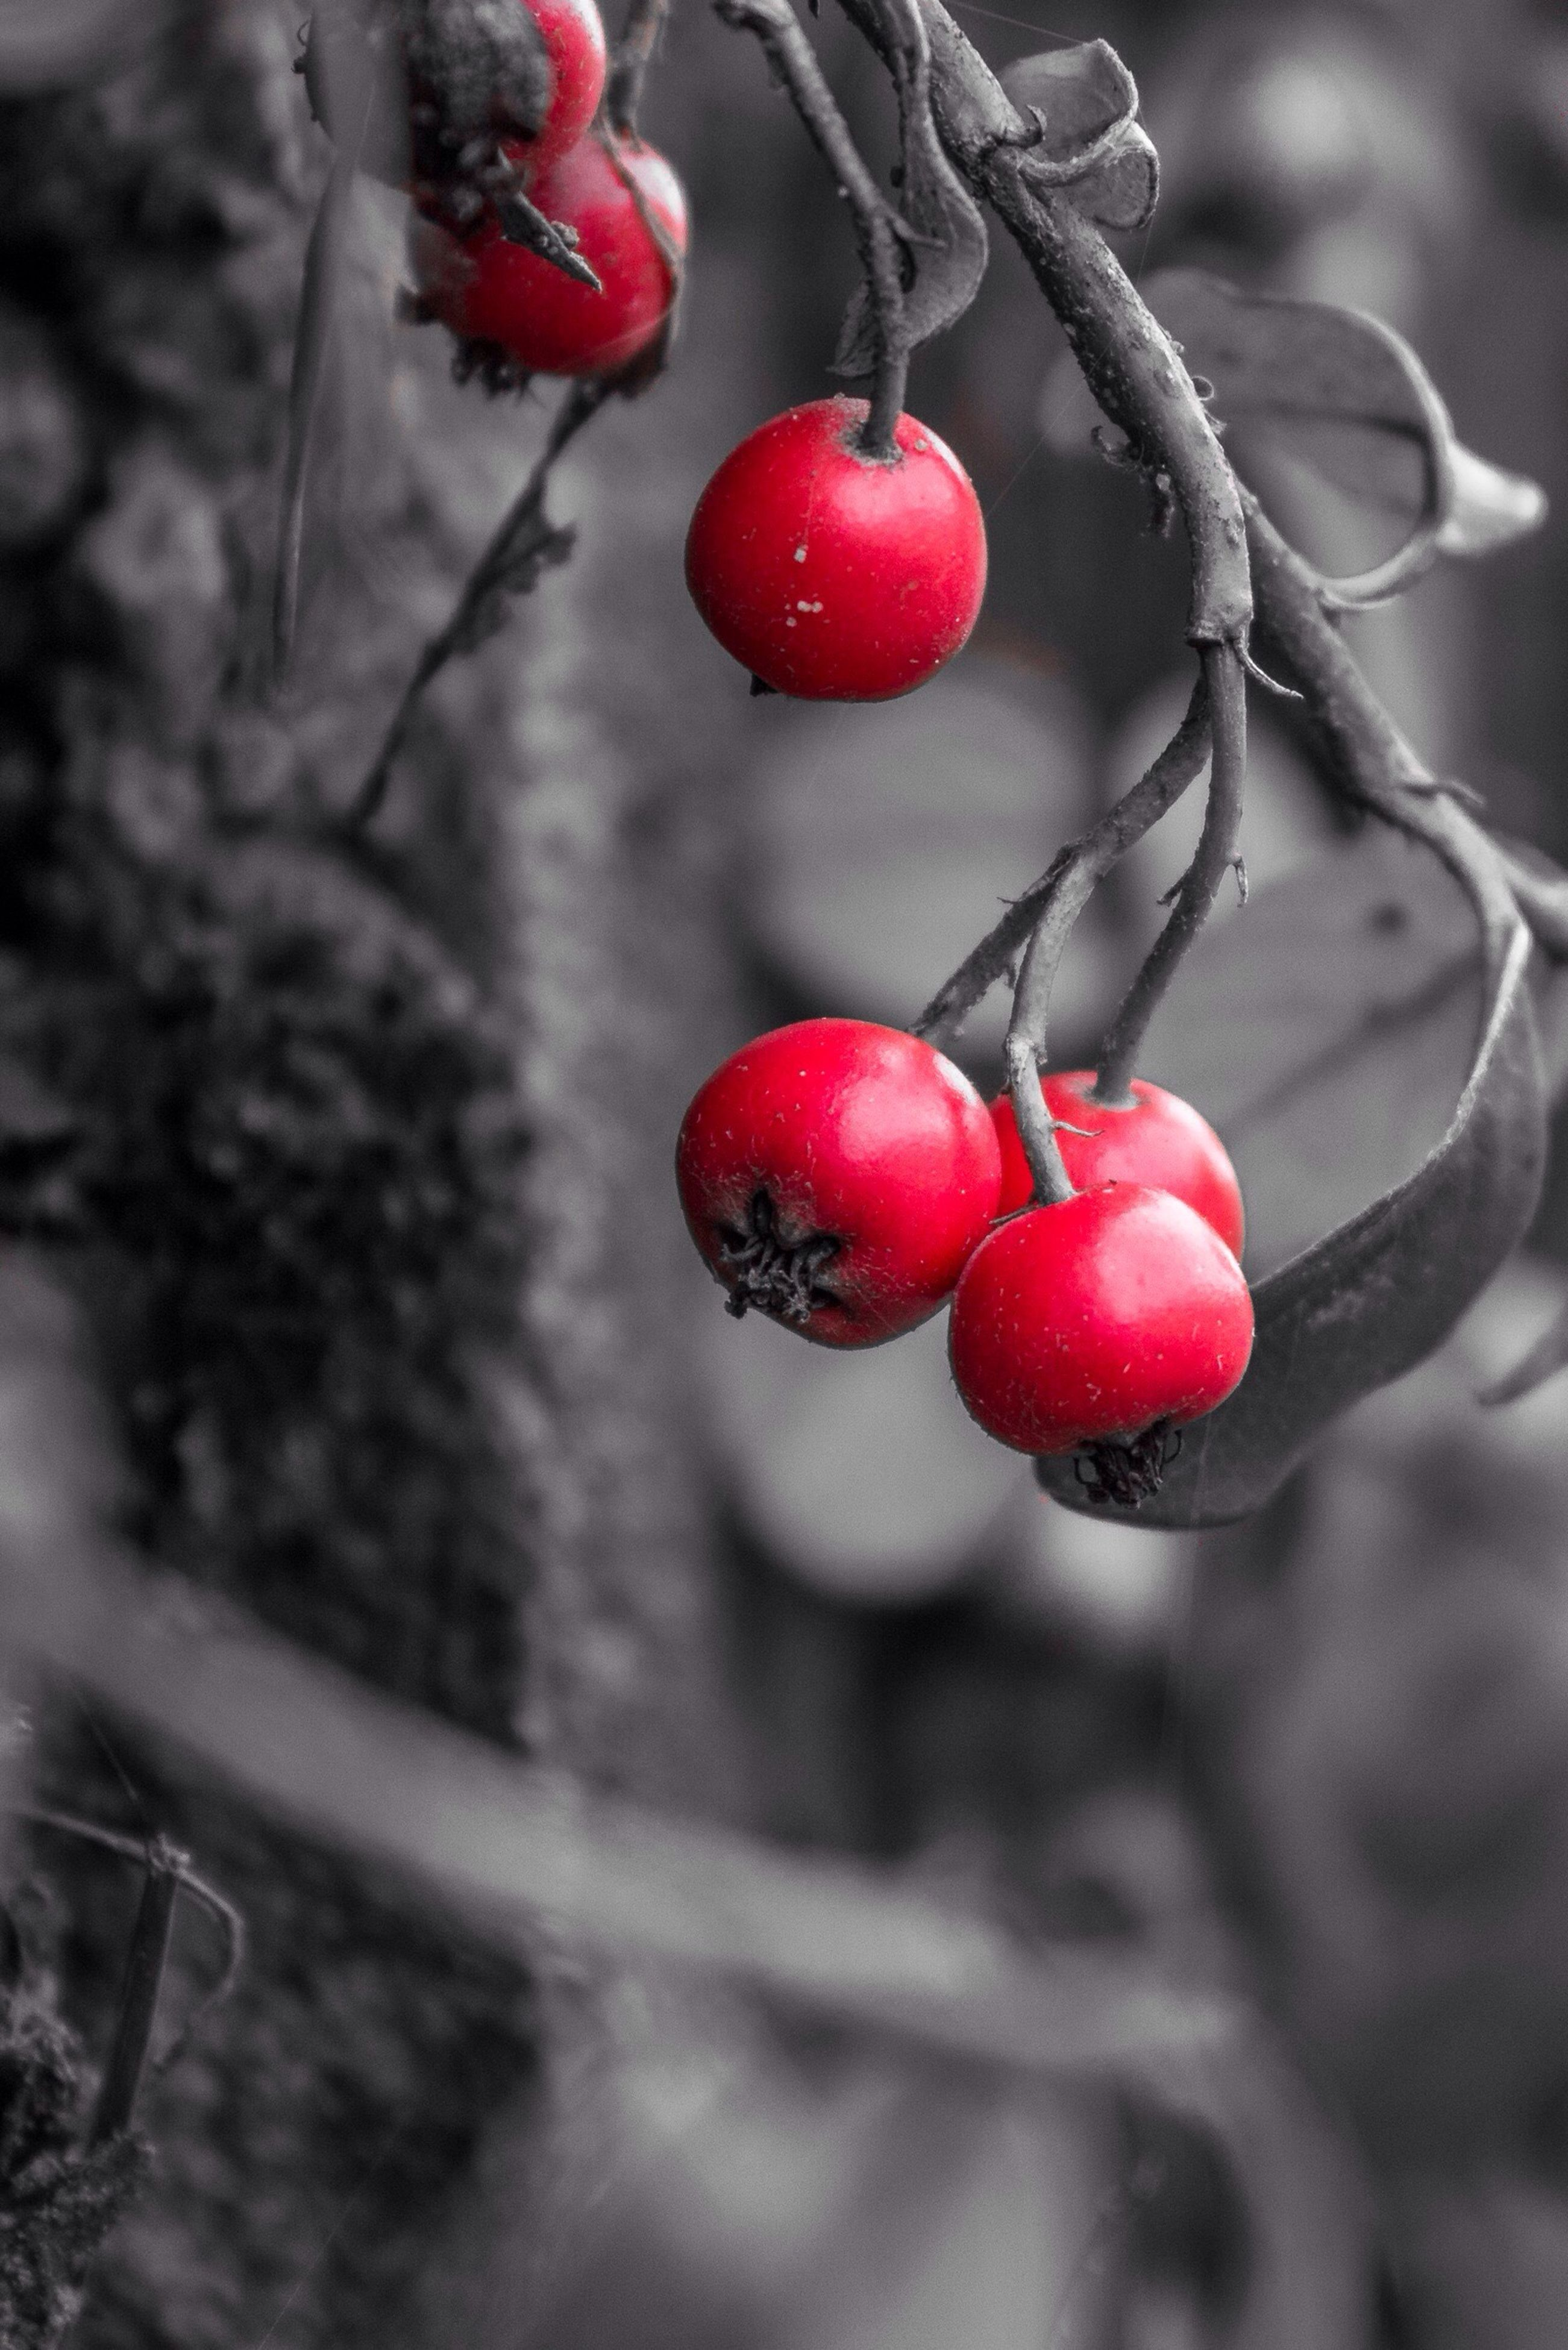 red, fruit, food and drink, hanging, cherry, focus on foreground, close-up, tree, branch, berry fruit, freshness, healthy eating, food, ripe, selective focus, no people, day, outdoors, berry, twig